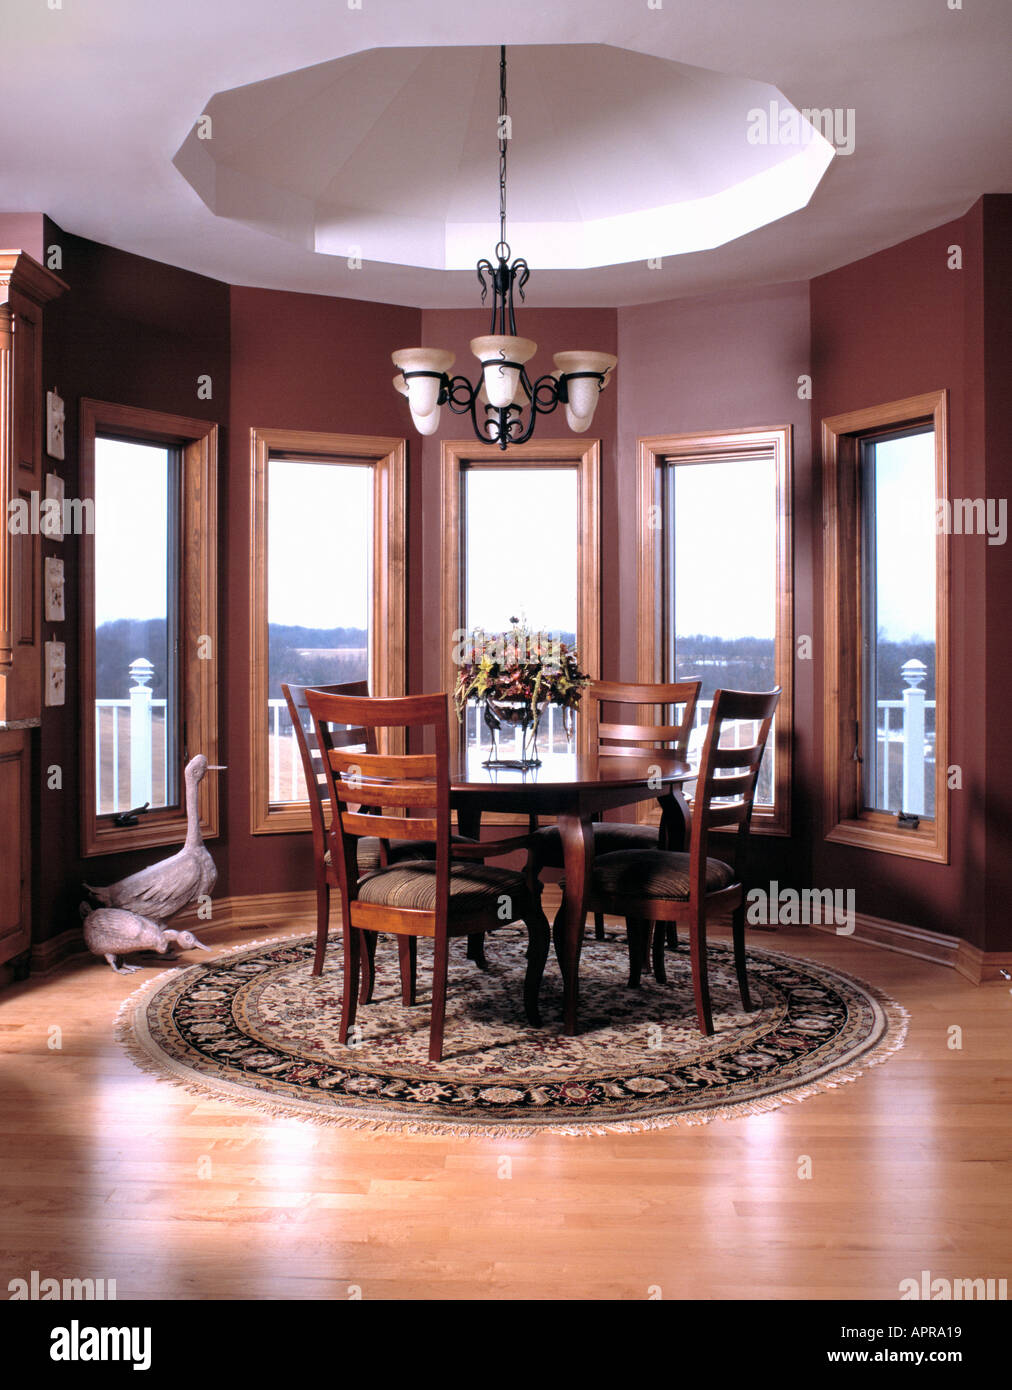 dining room dinner lunch breakfast window table alcove wood floor hanging lights Stock Photo